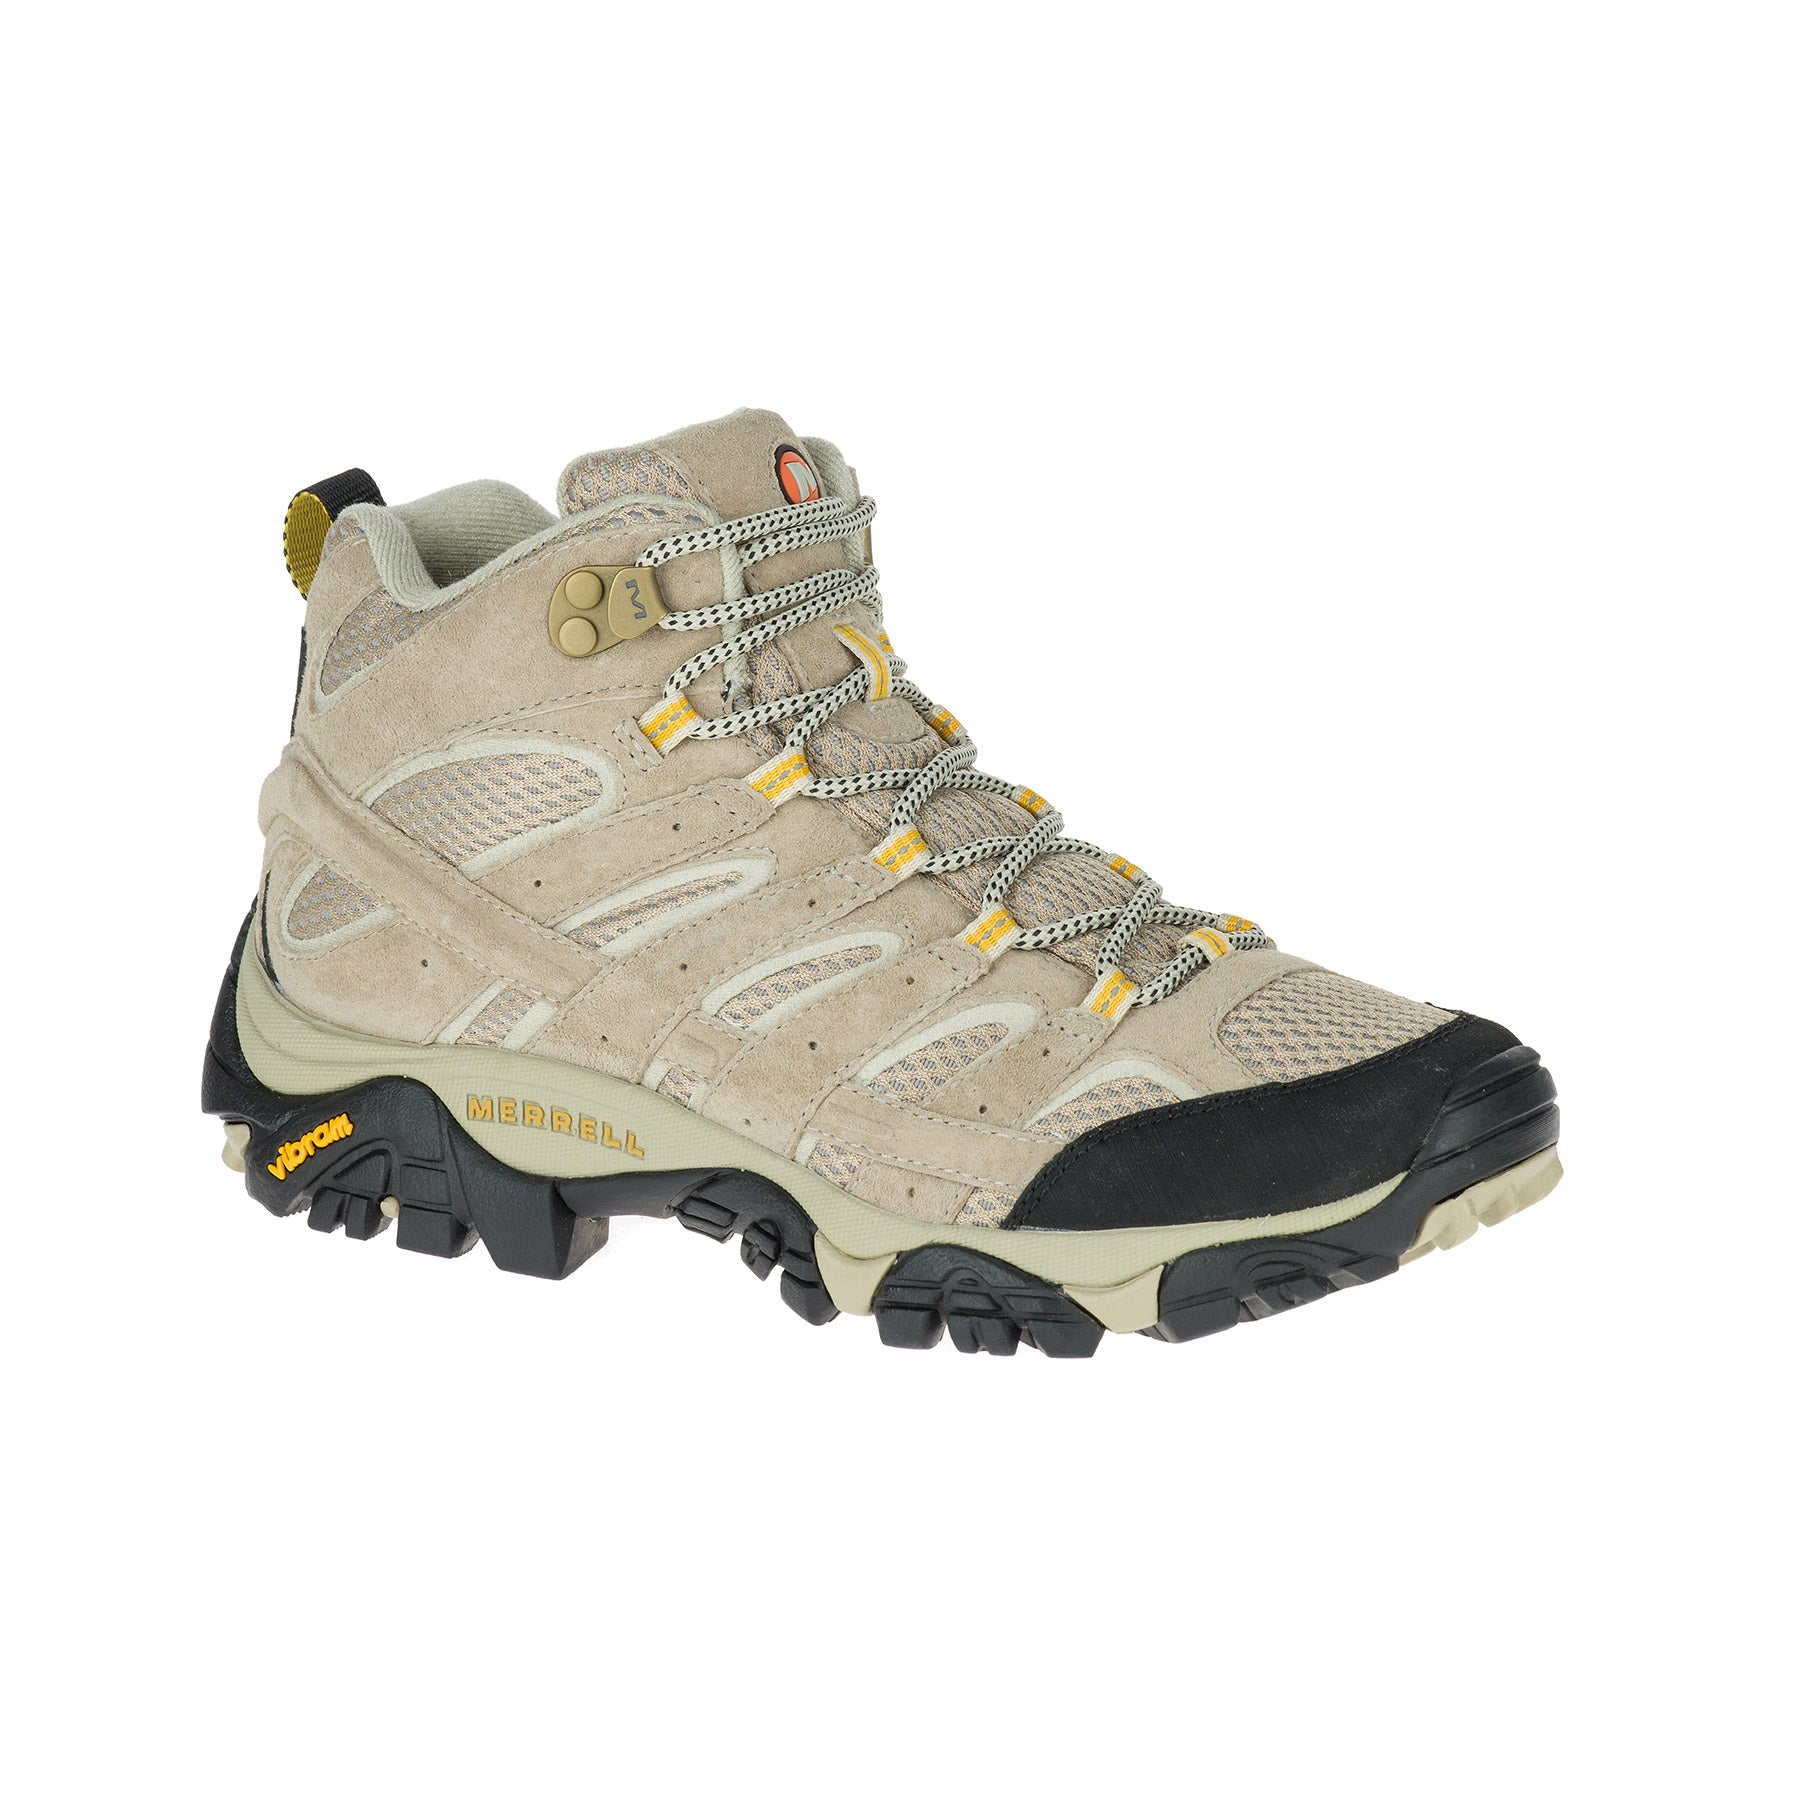 merrell moab 2 ventilator womens hiking boot side view in colors tan and yellow